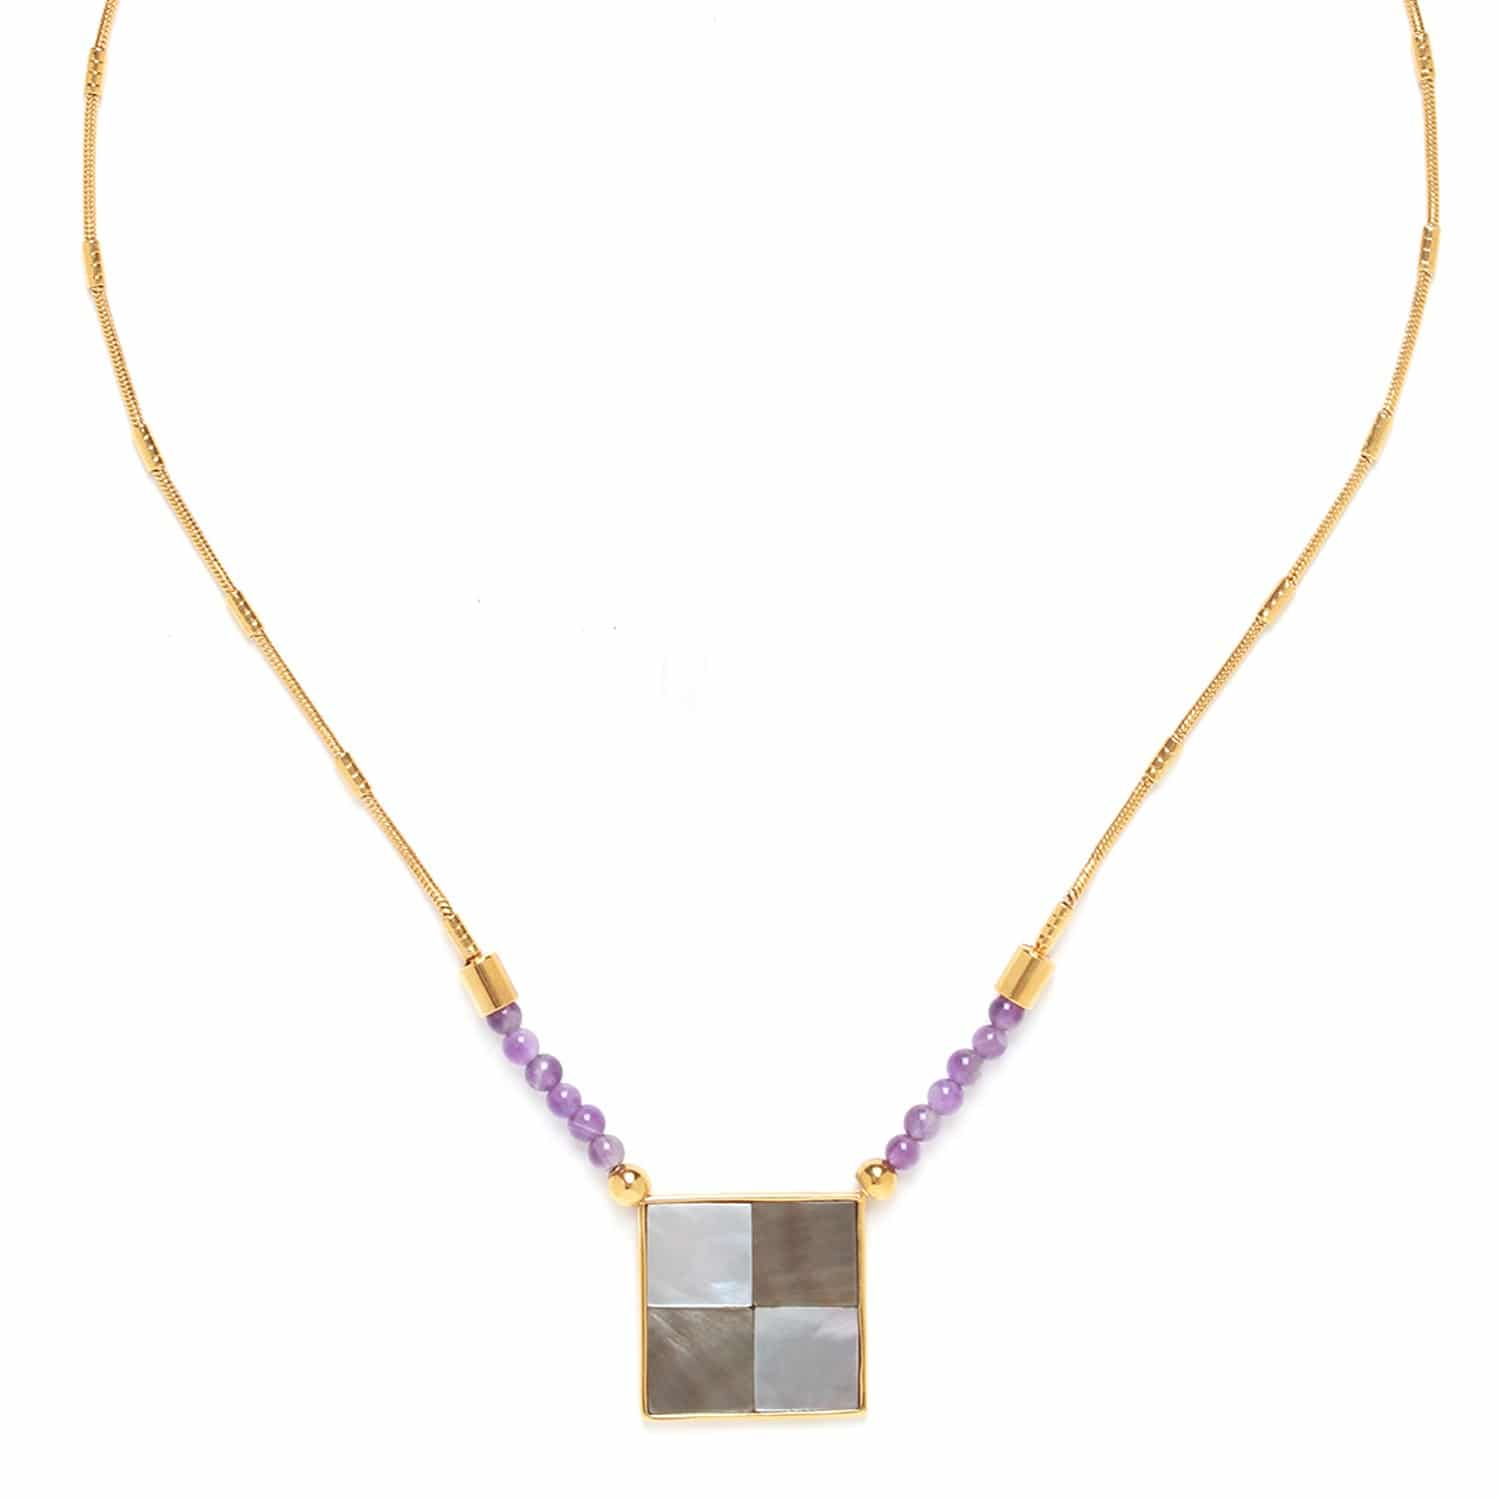 LE SQUARE small pendant necklace